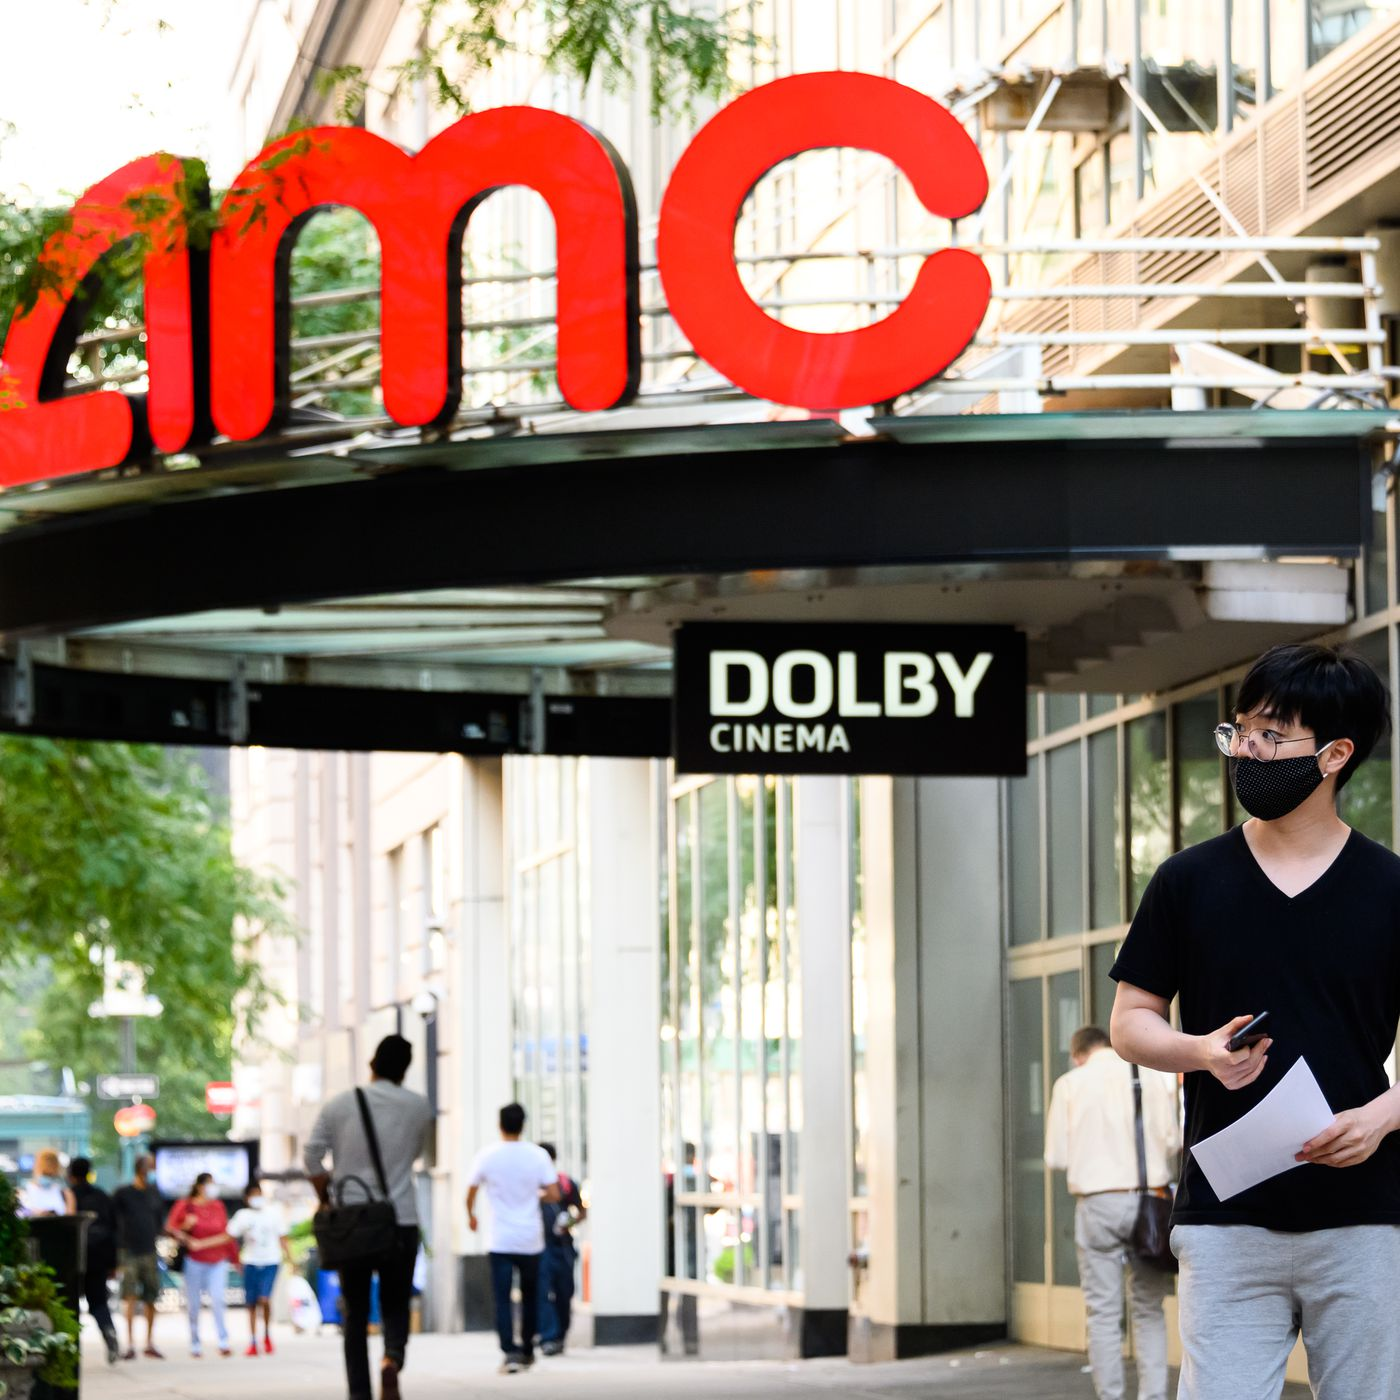 Amc Theaters Plans To Reopen More Than 100 Locations In The Us Starting August 20th The Verge